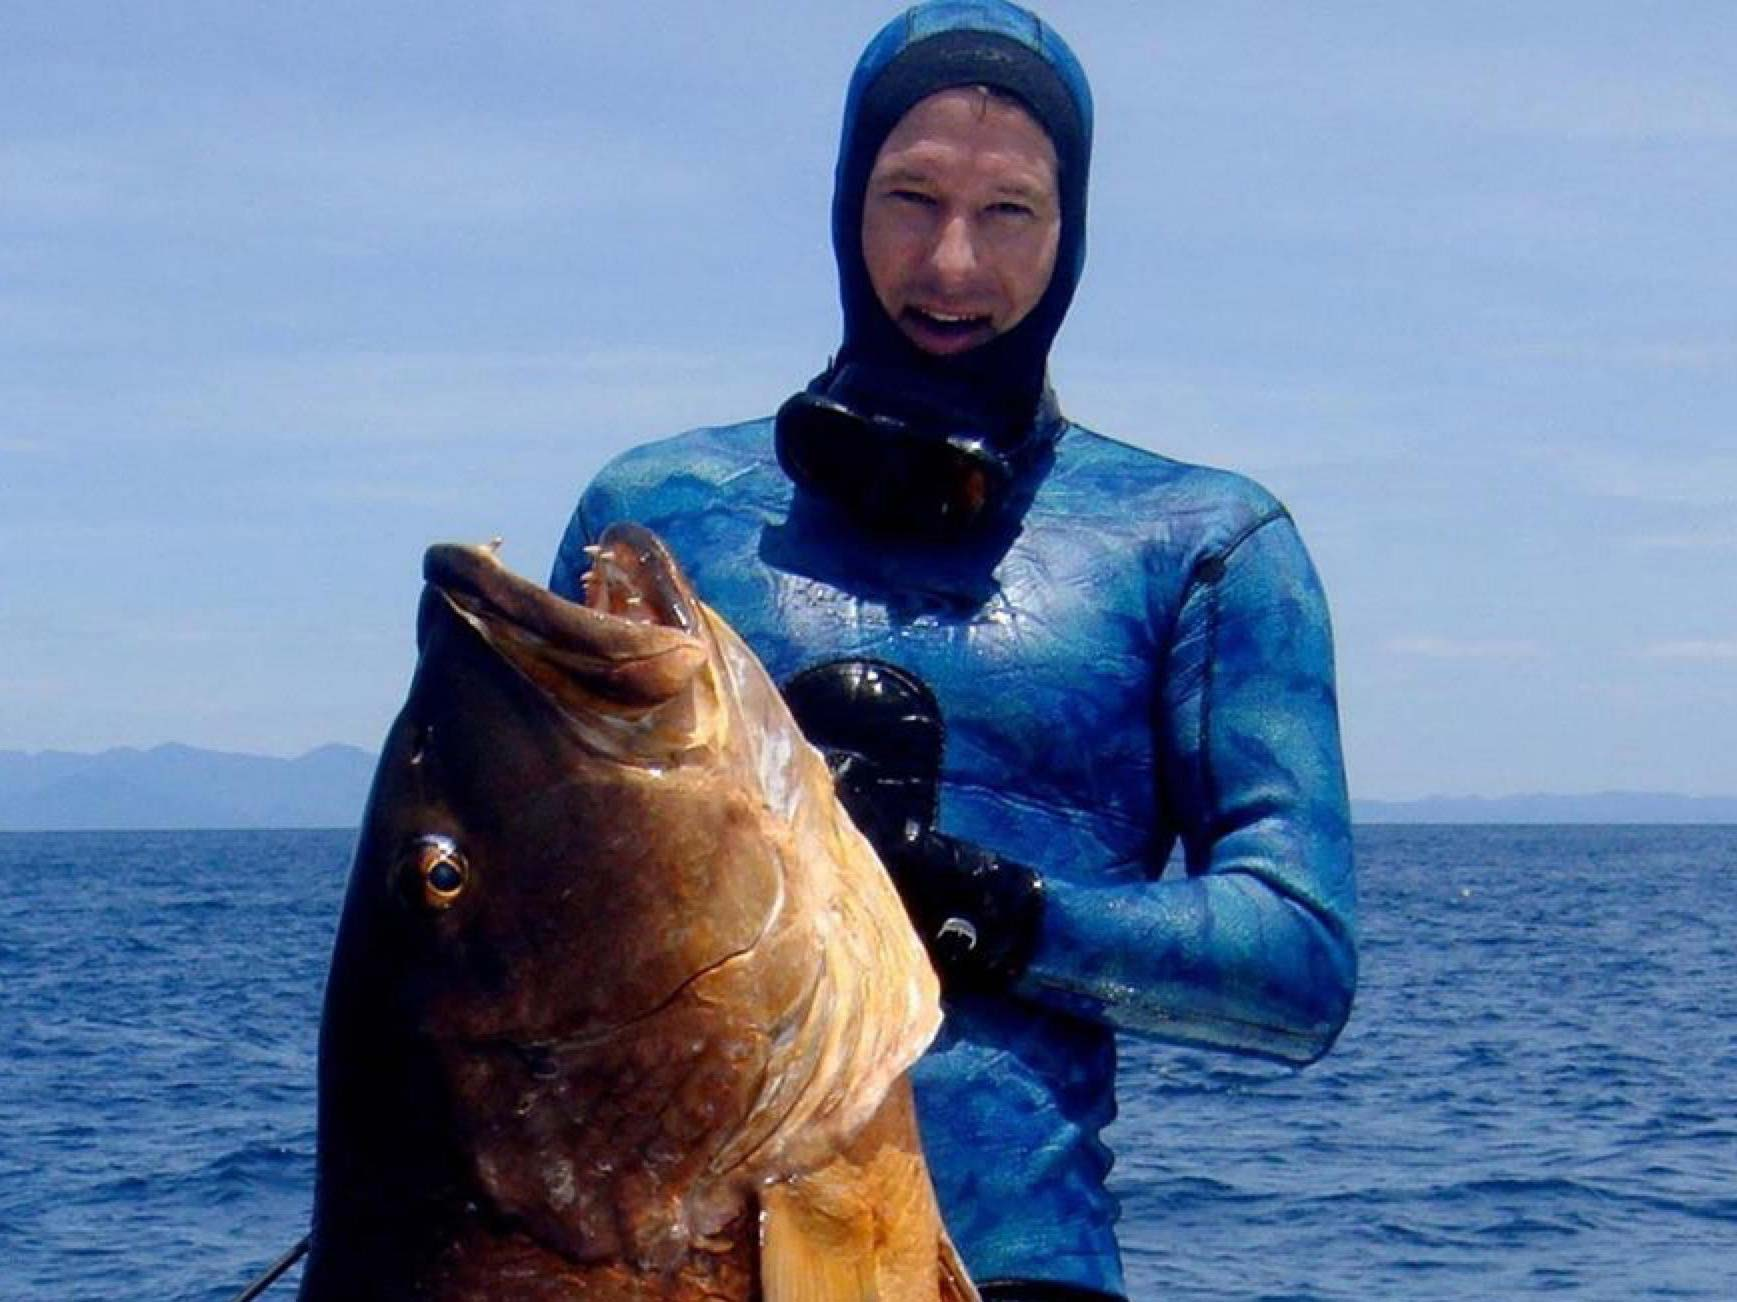 Cameron Kirkconnell posing with a big fish